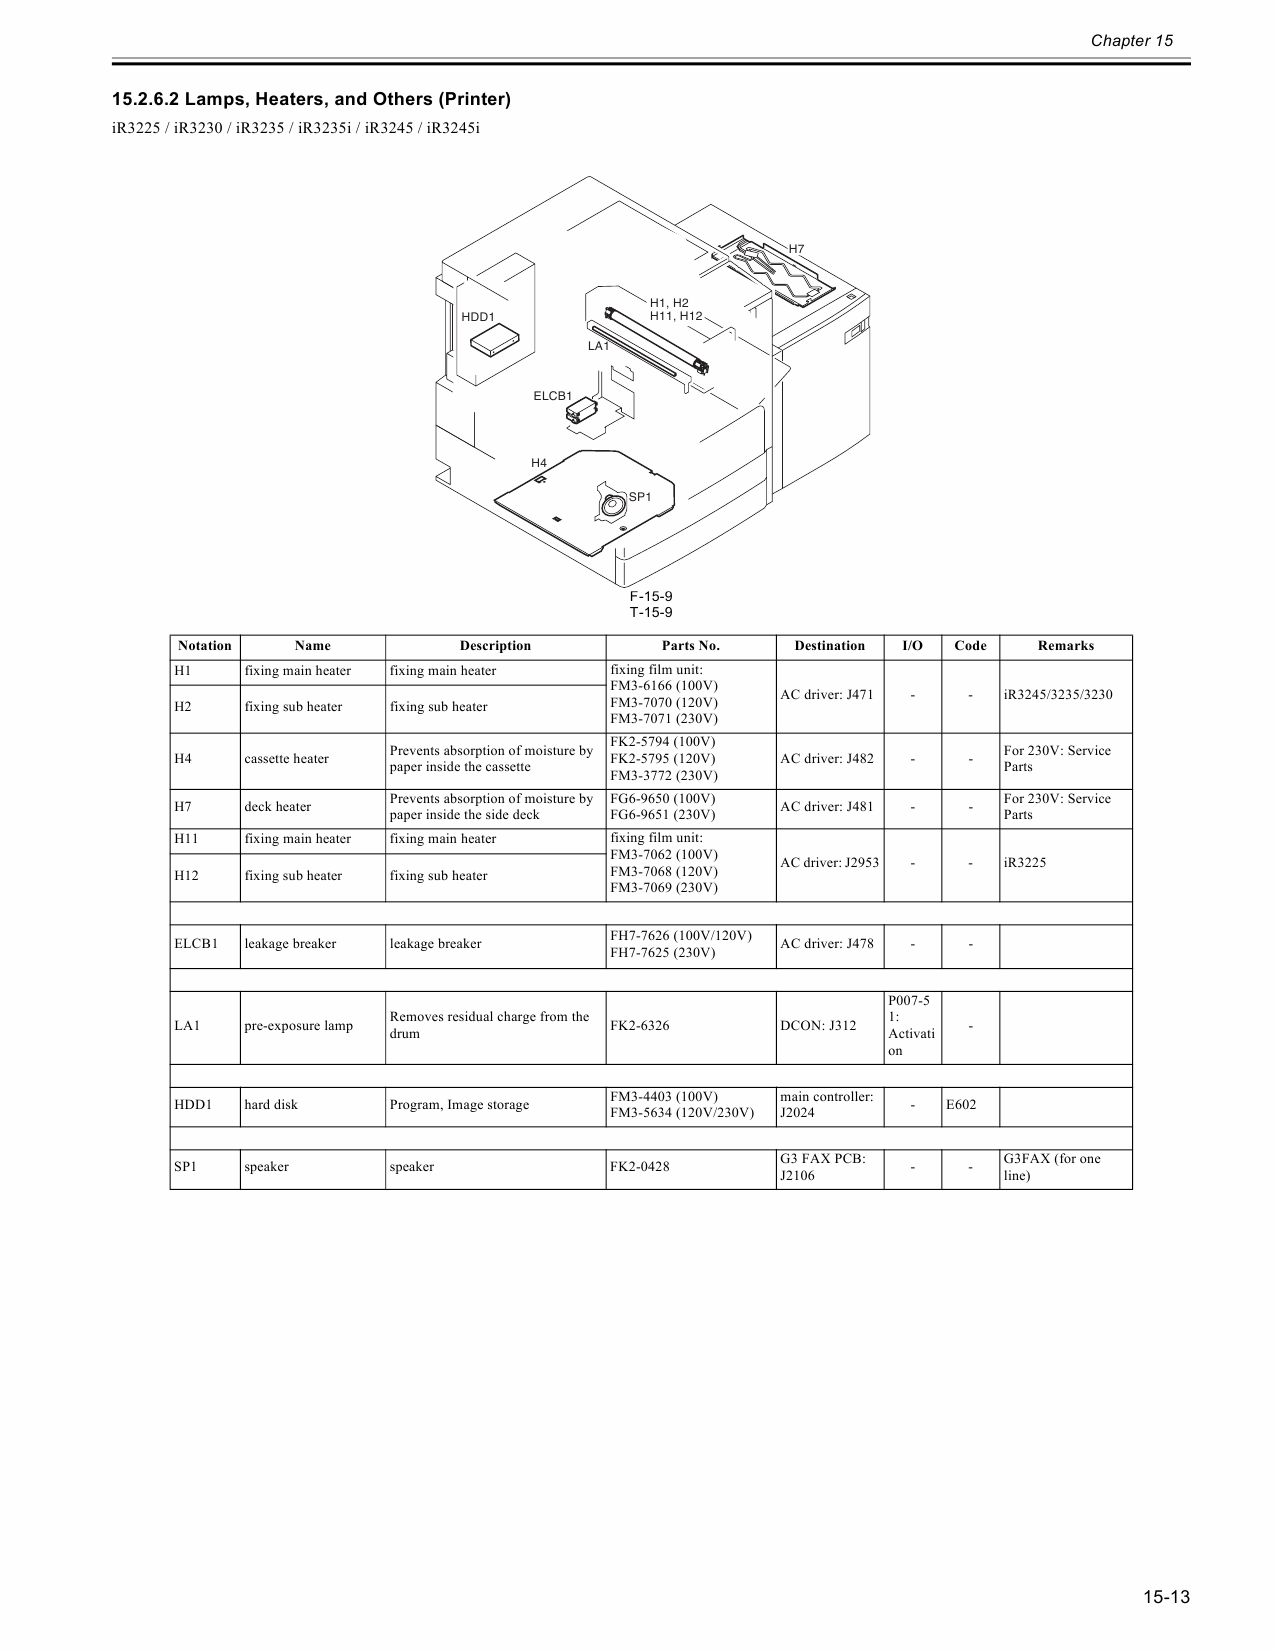 Canon imageRUNNER iR-3245 3235 3230 3225 Parts and Service Manual-4